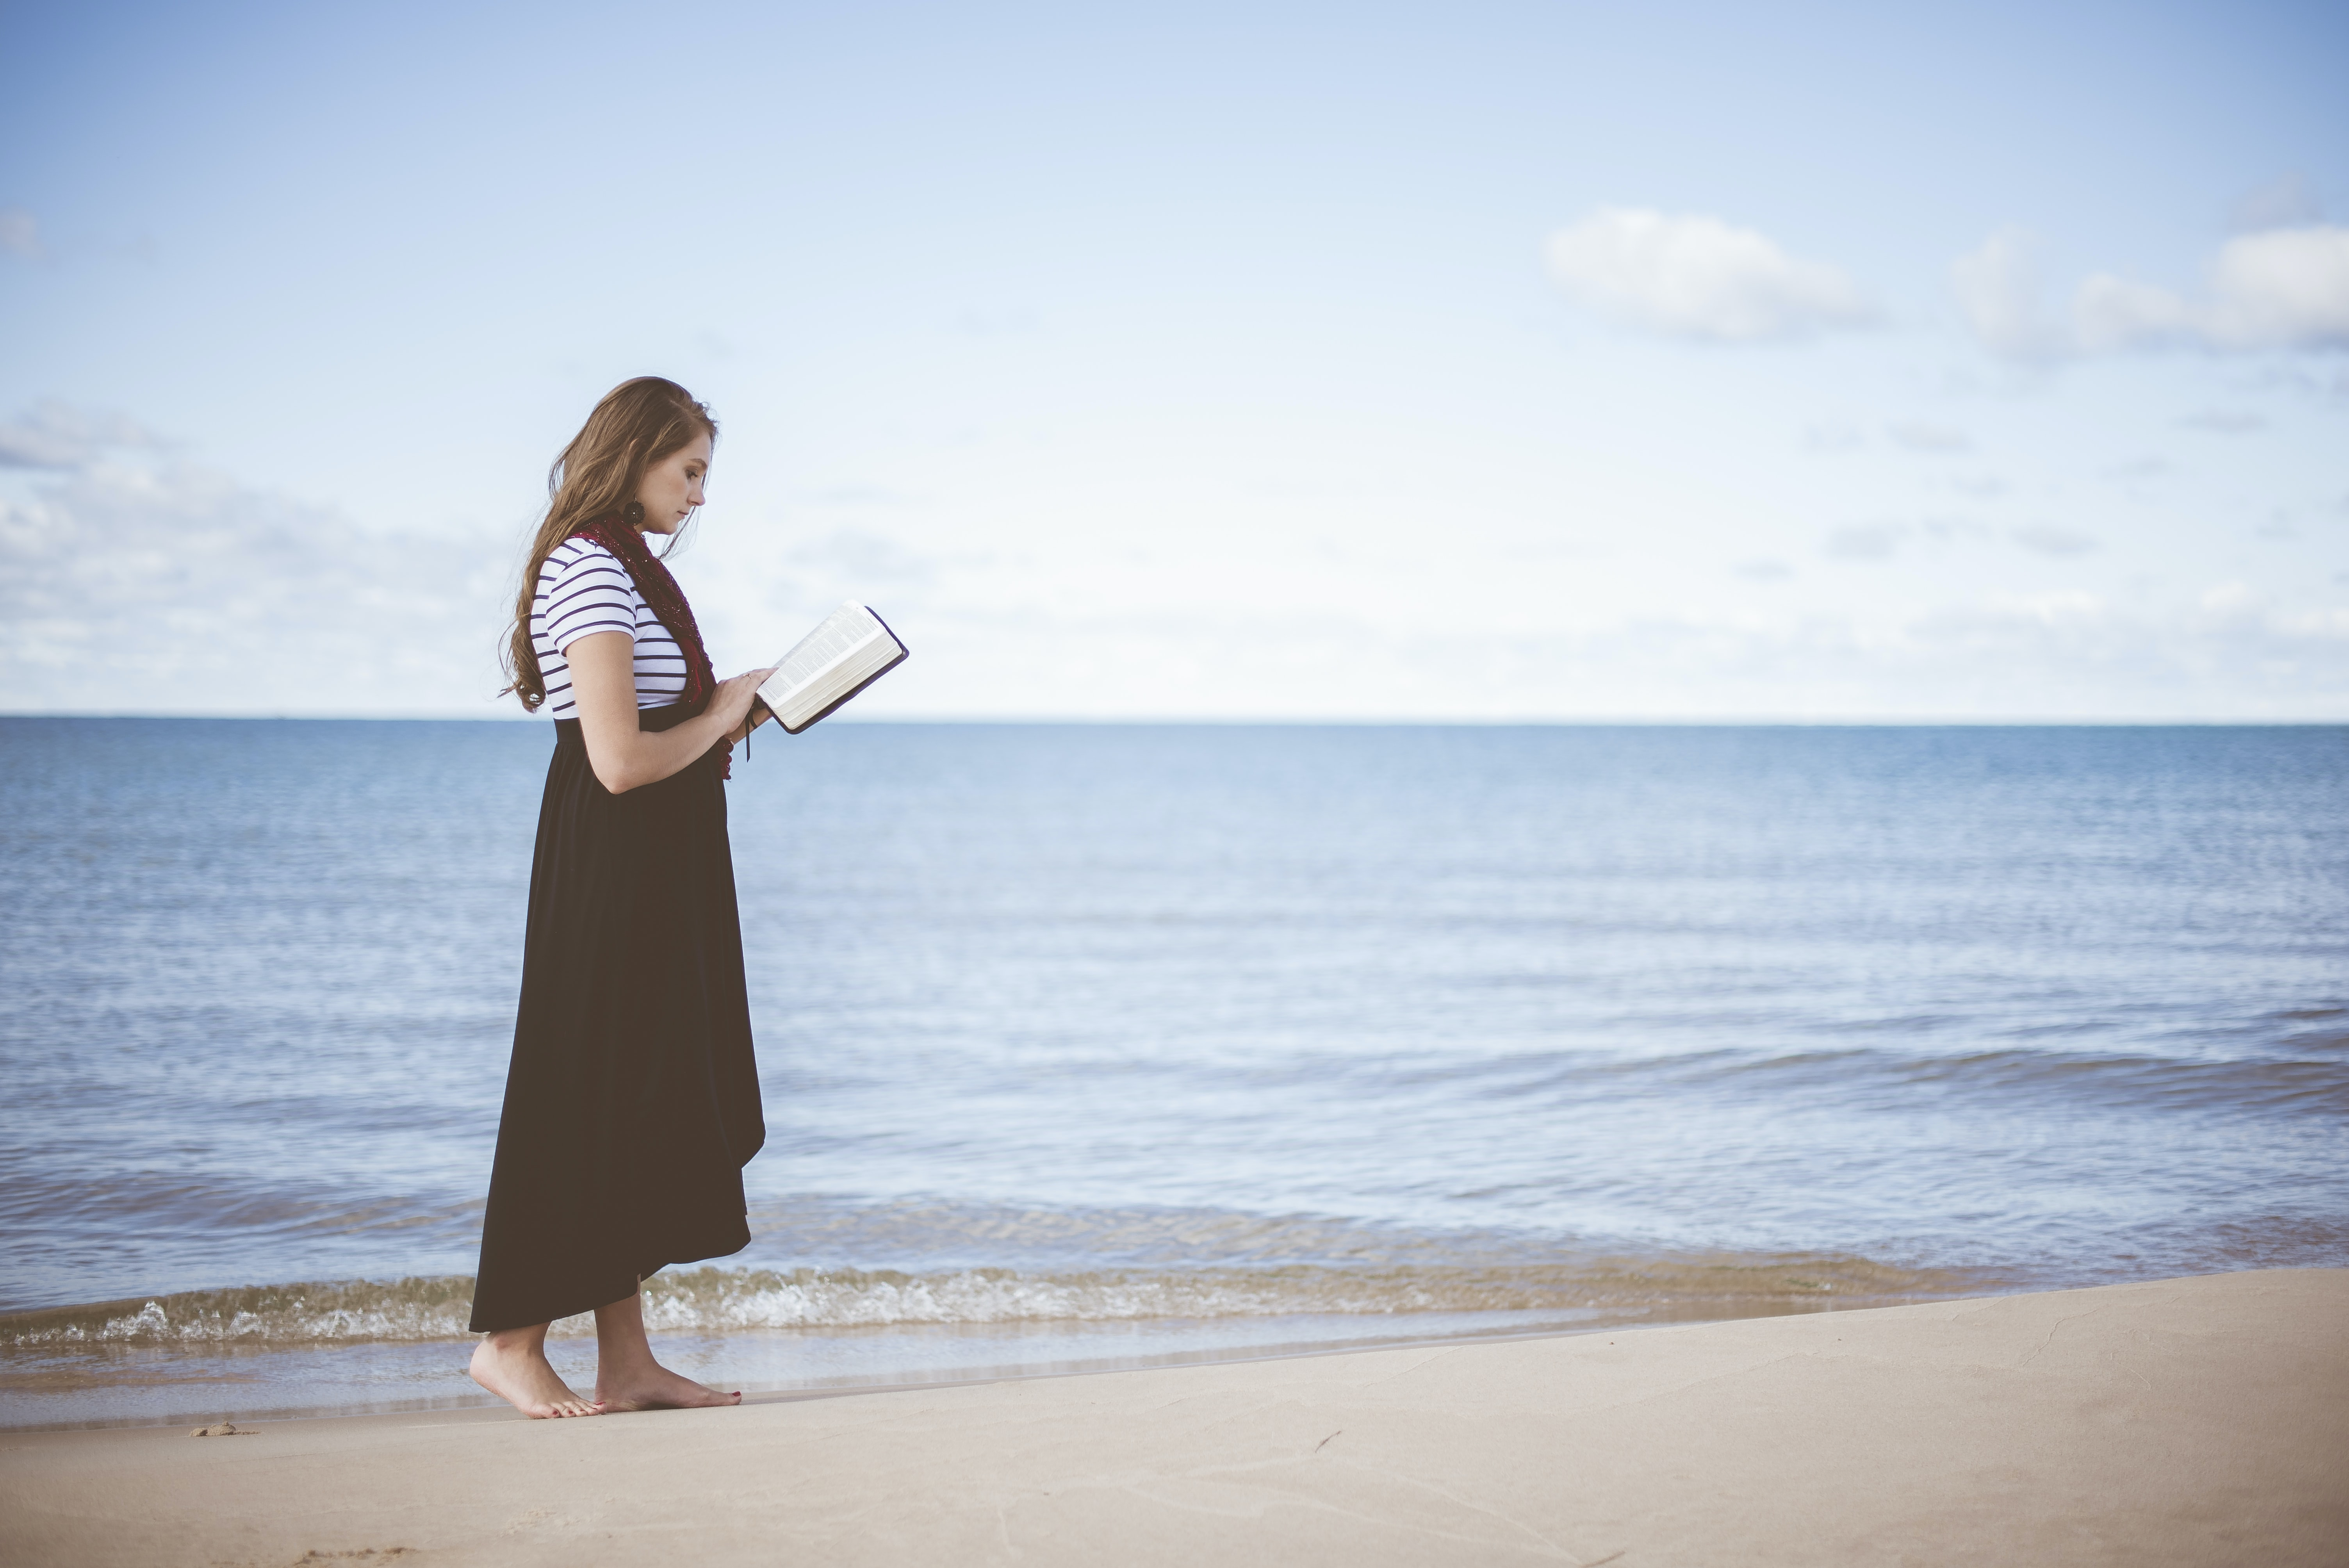 A woman standing in the sand while reading a book on a beach.